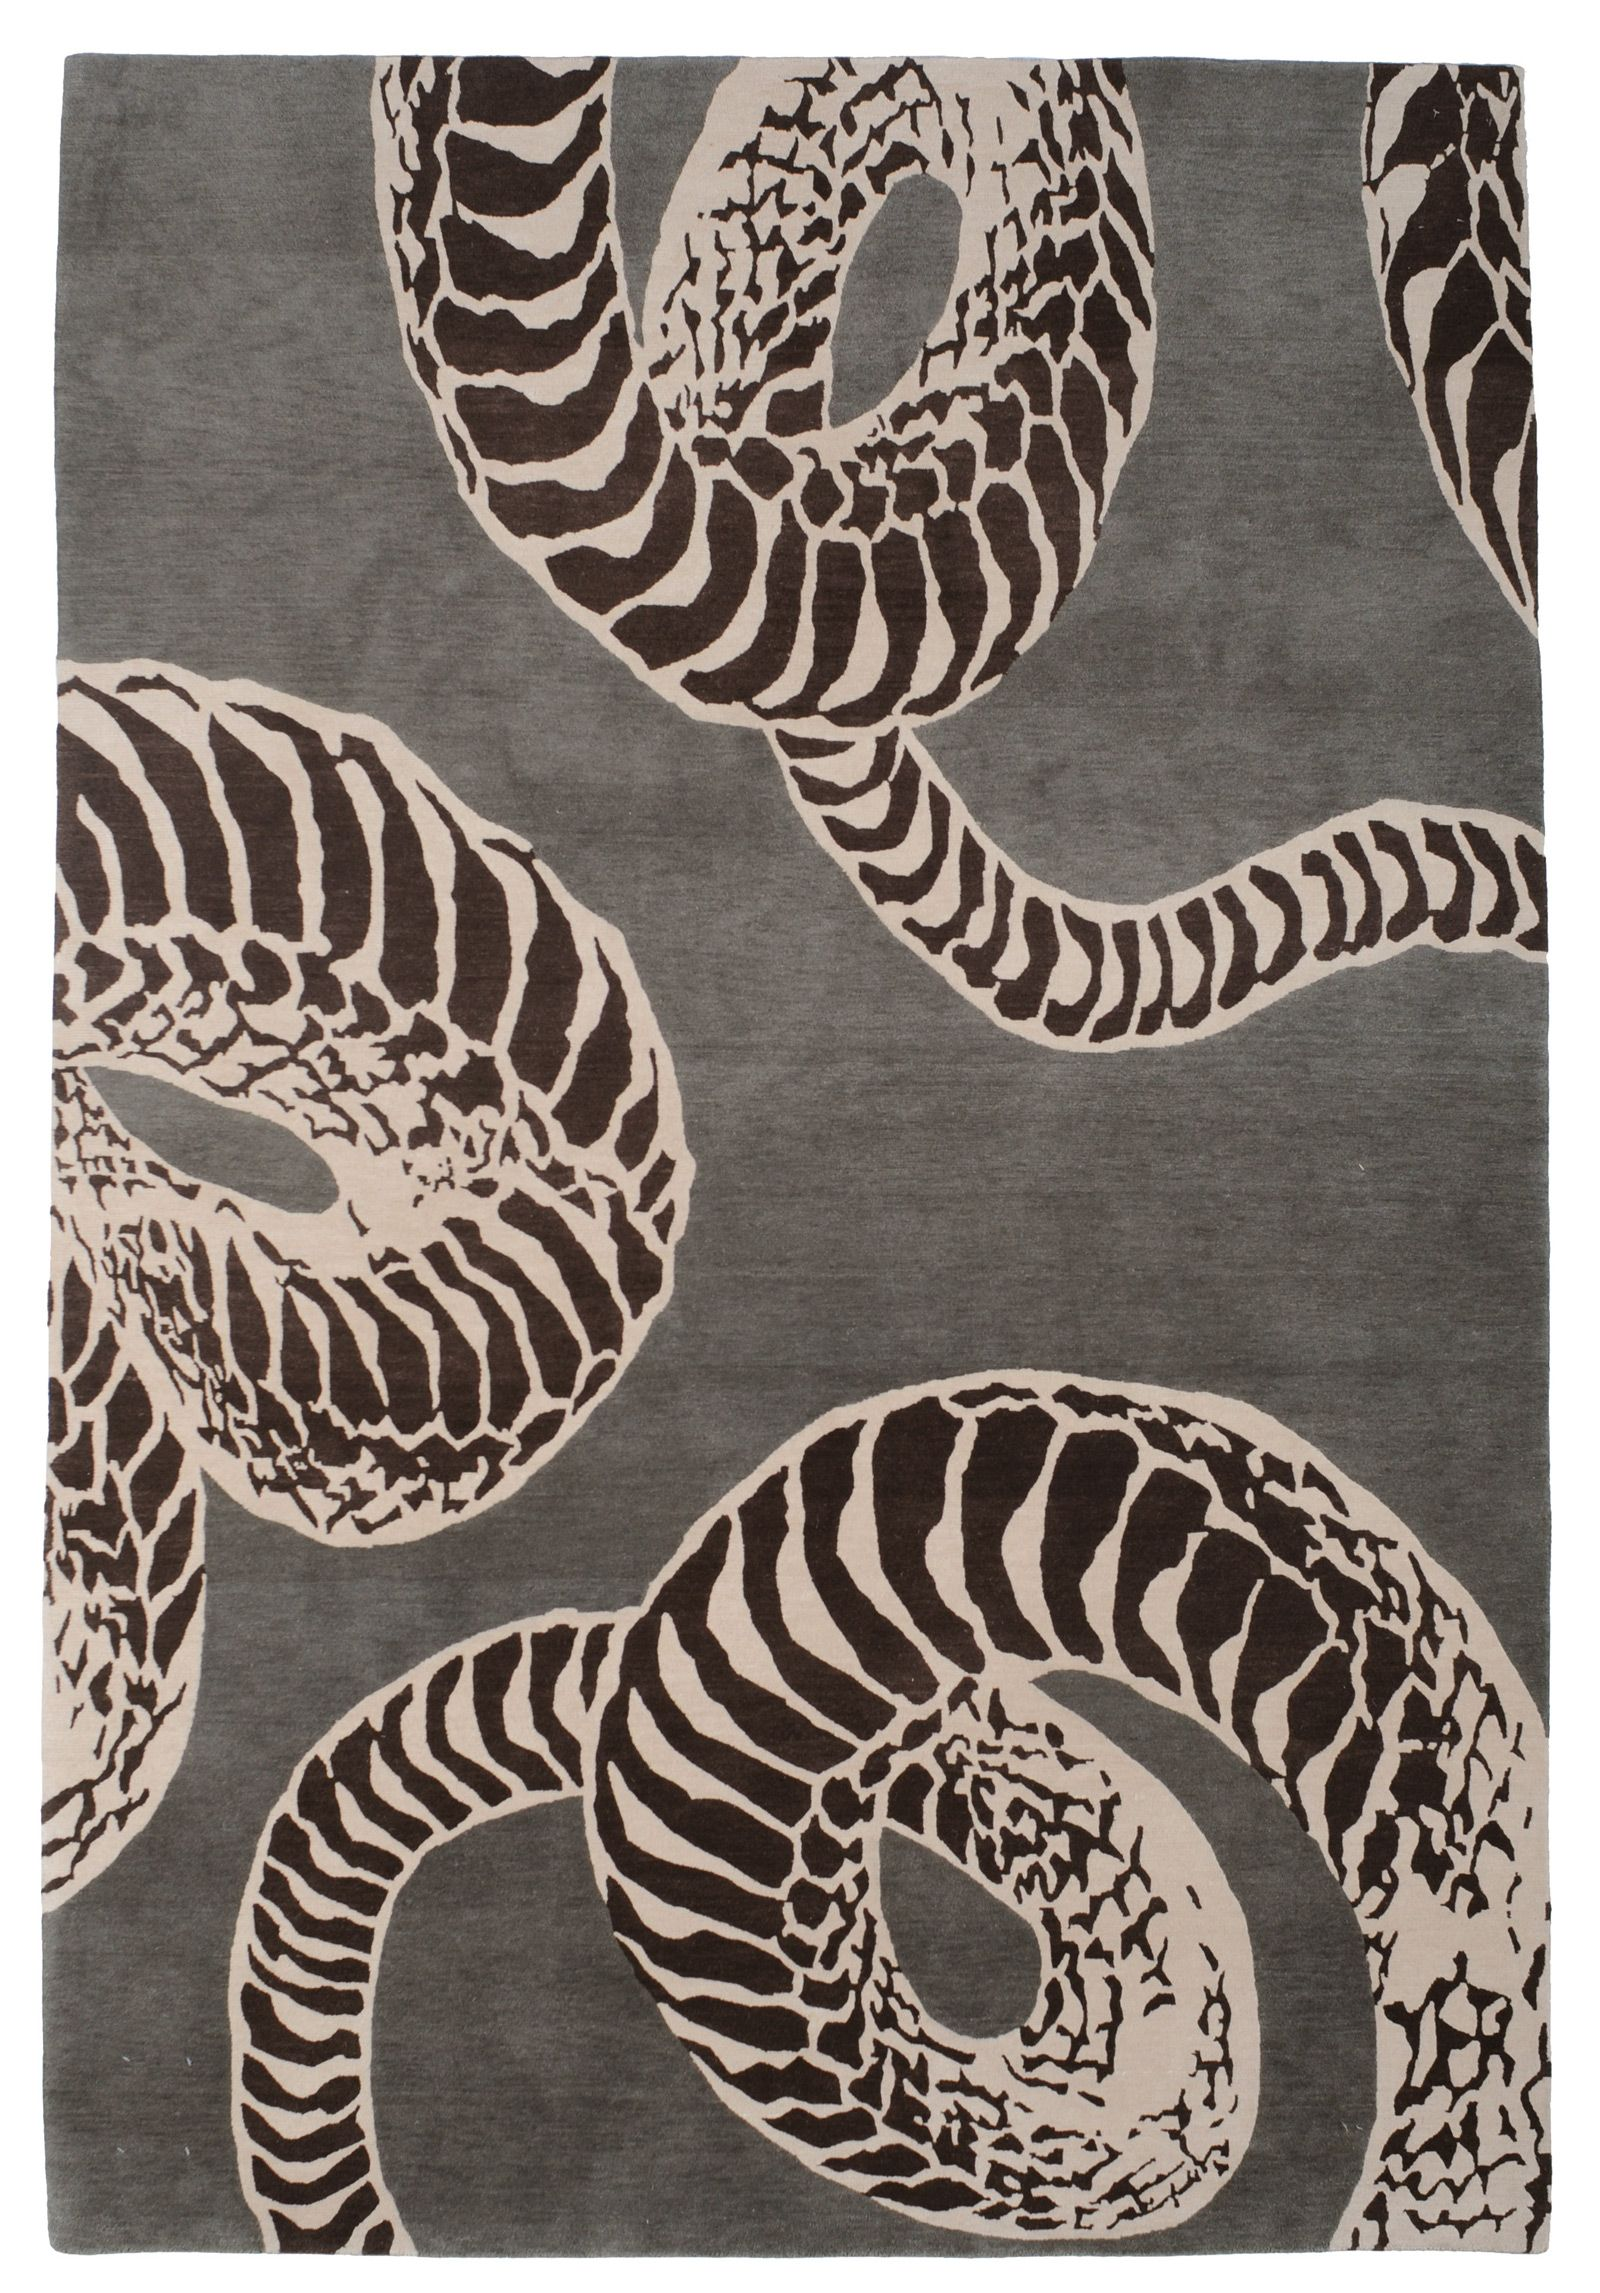 Serpent By Kelly Wearstler For The Rug Company Floored